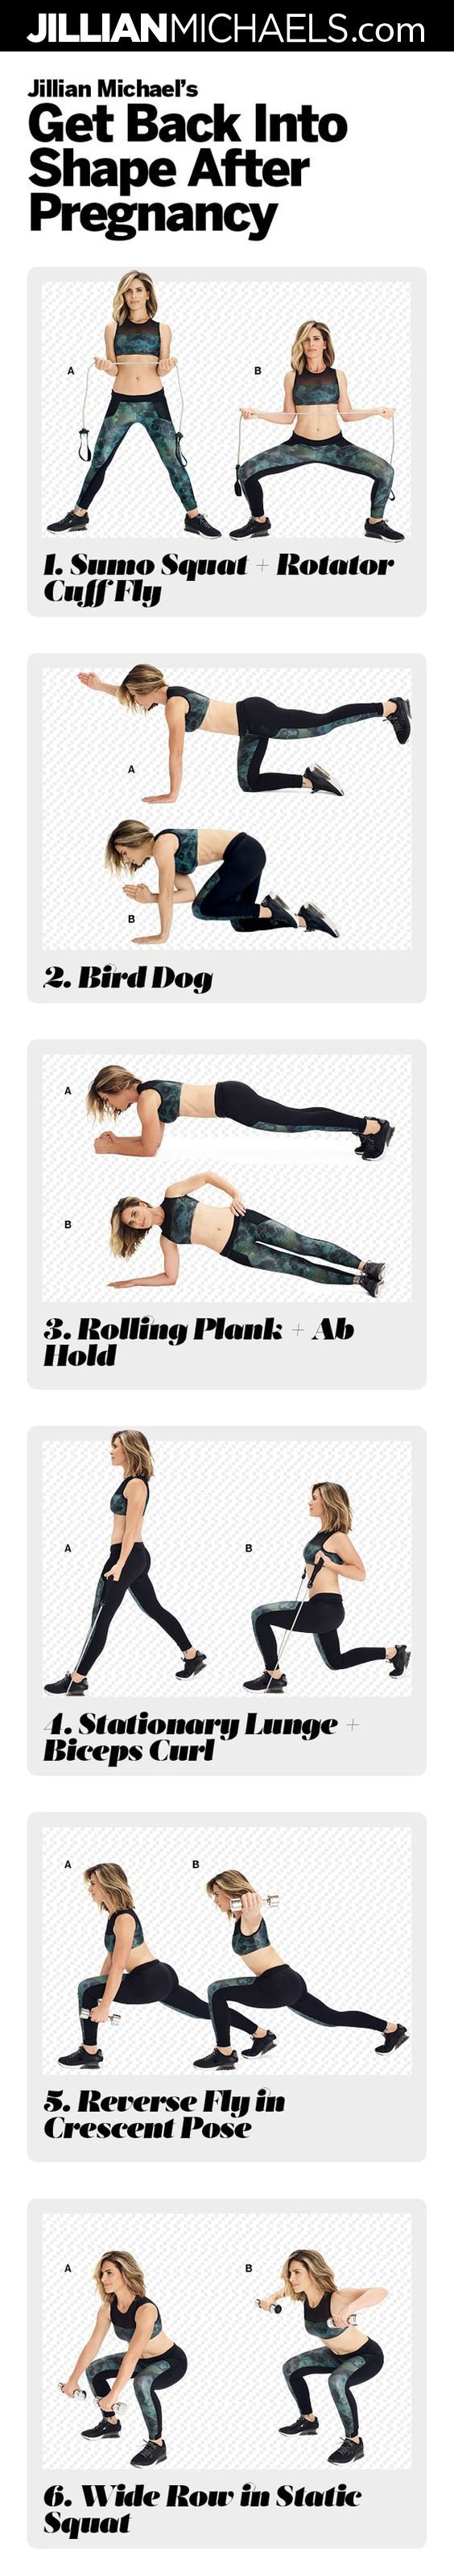 for workouts of all kinds and all difficulty levels check out my app go.jillianmichaels.com/app